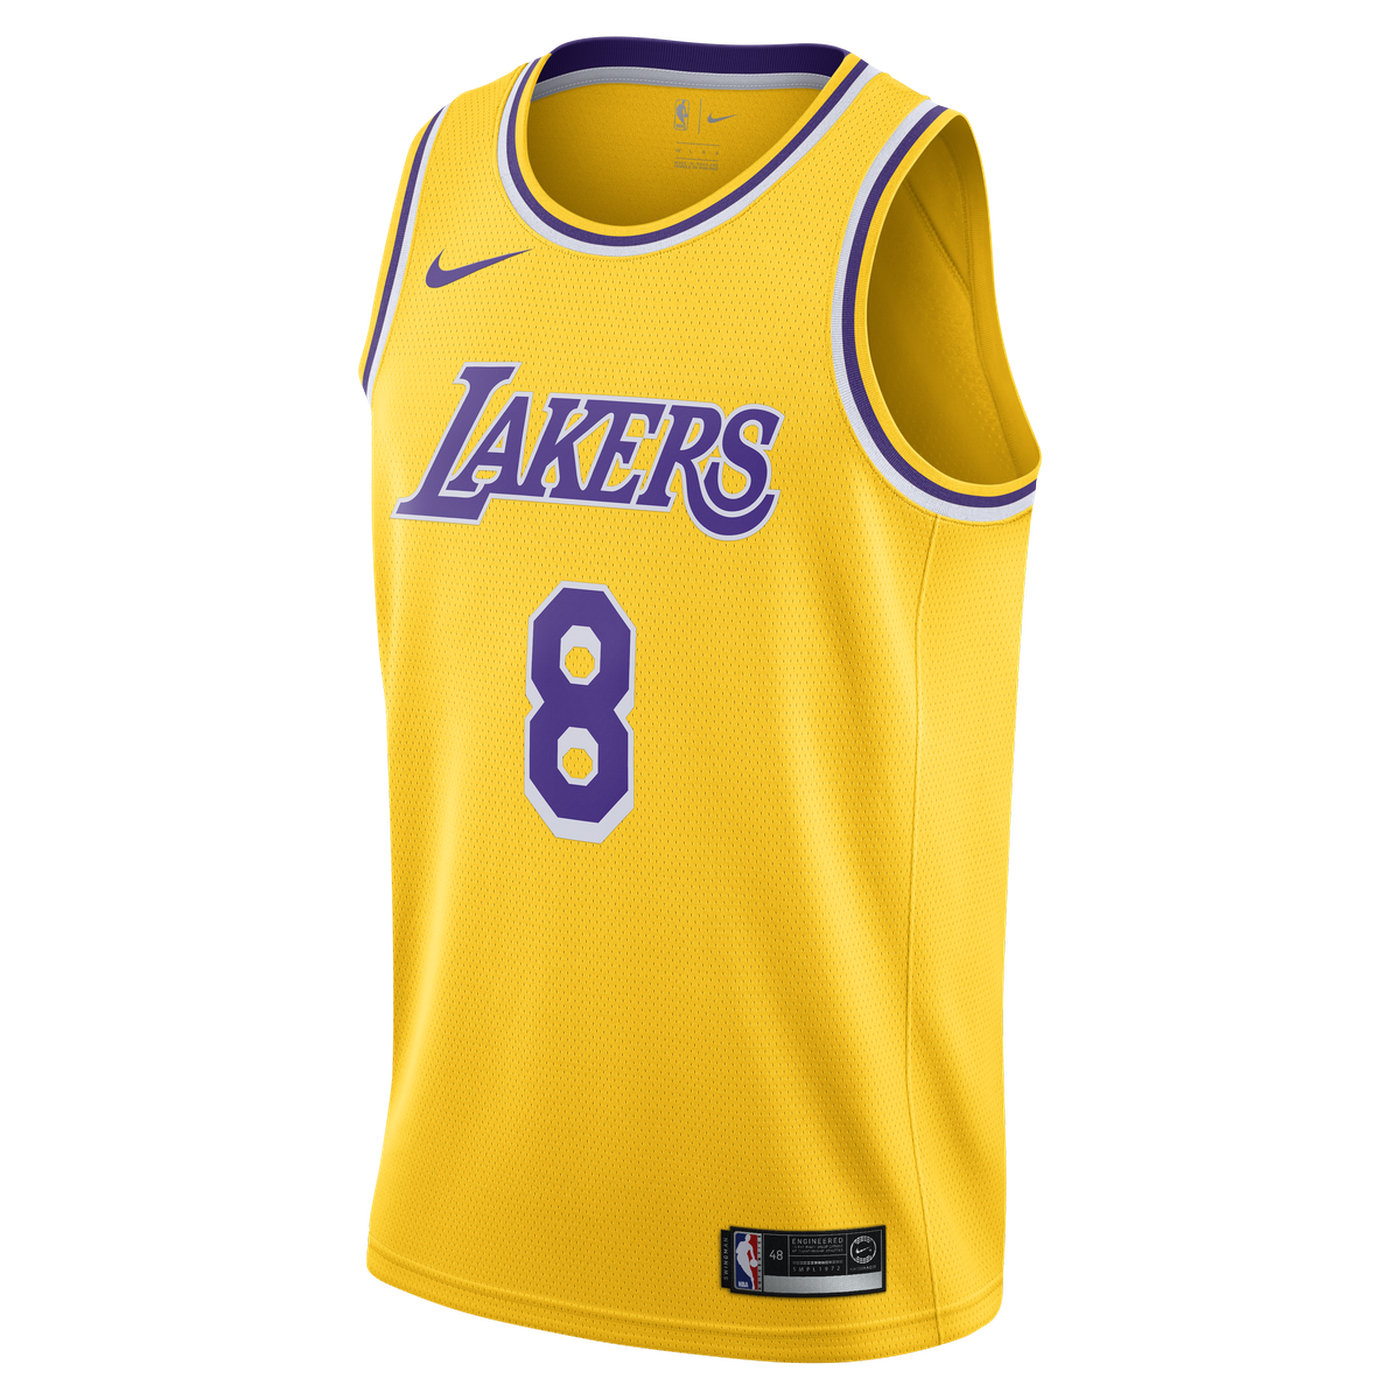 b588538f9 Lakers fans can celebrate  Kobe Bryant Day  with a new Nike jersey ...